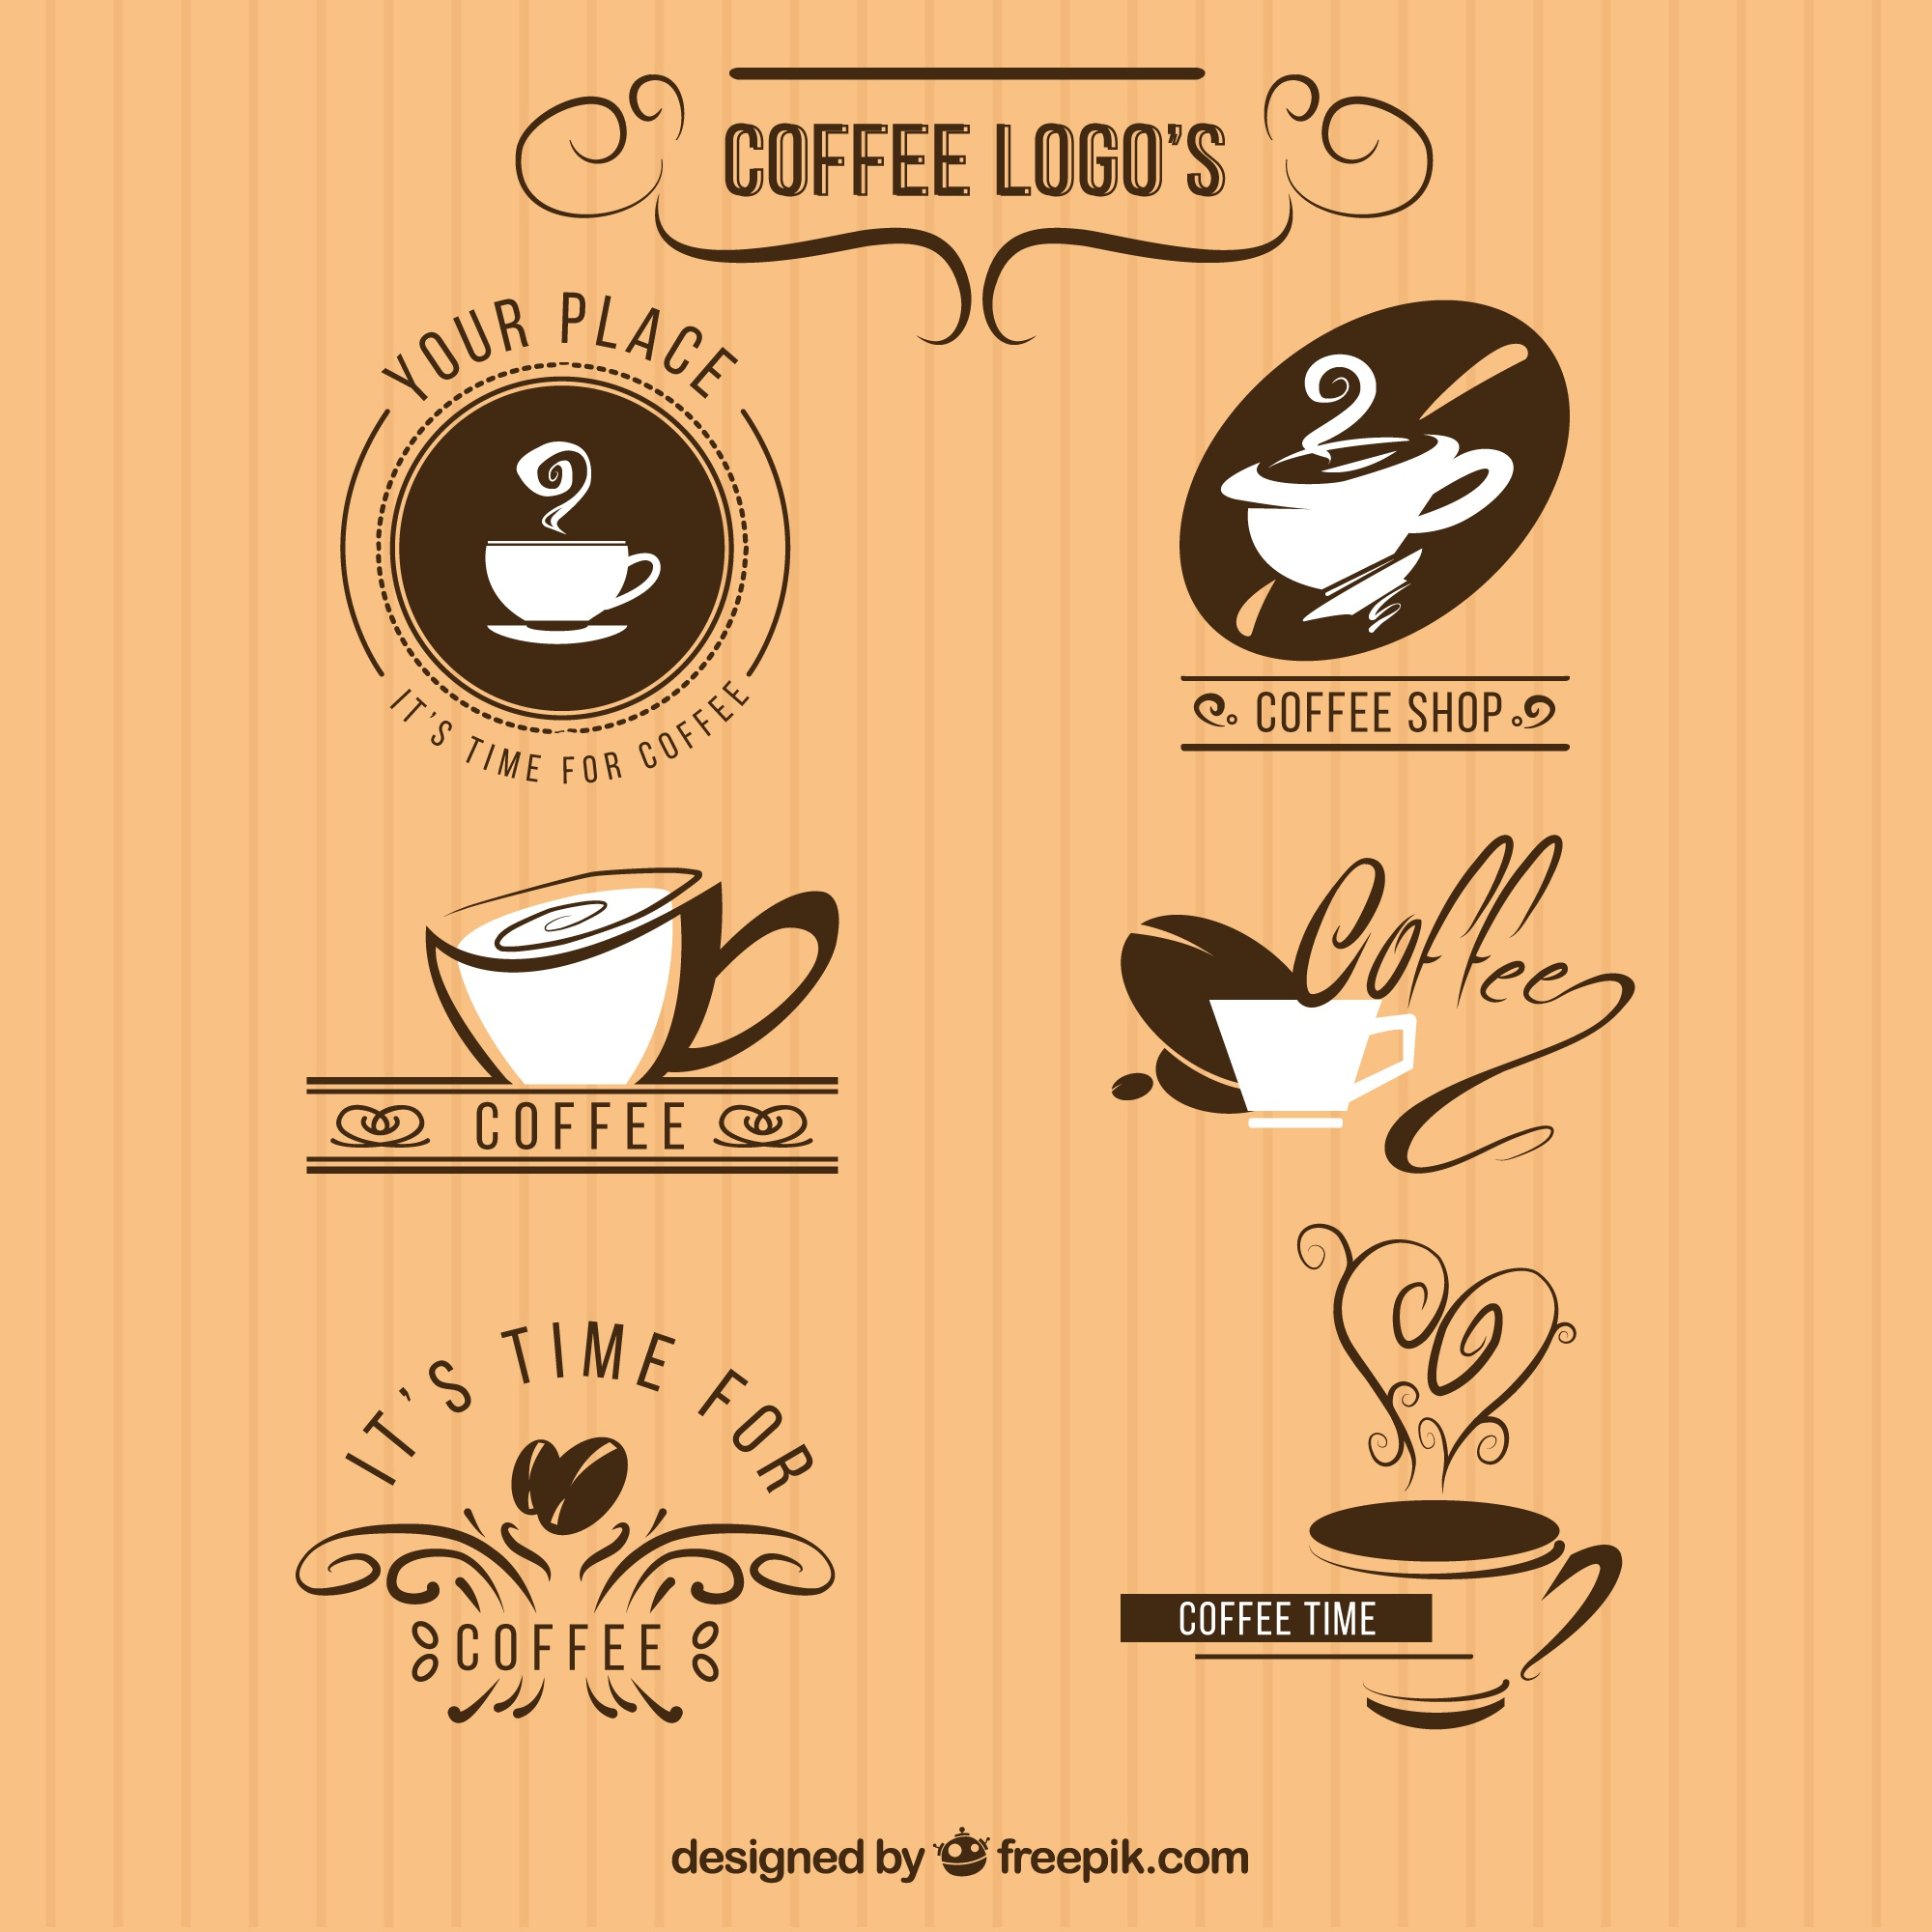 Pack of six logos for a coffee shop